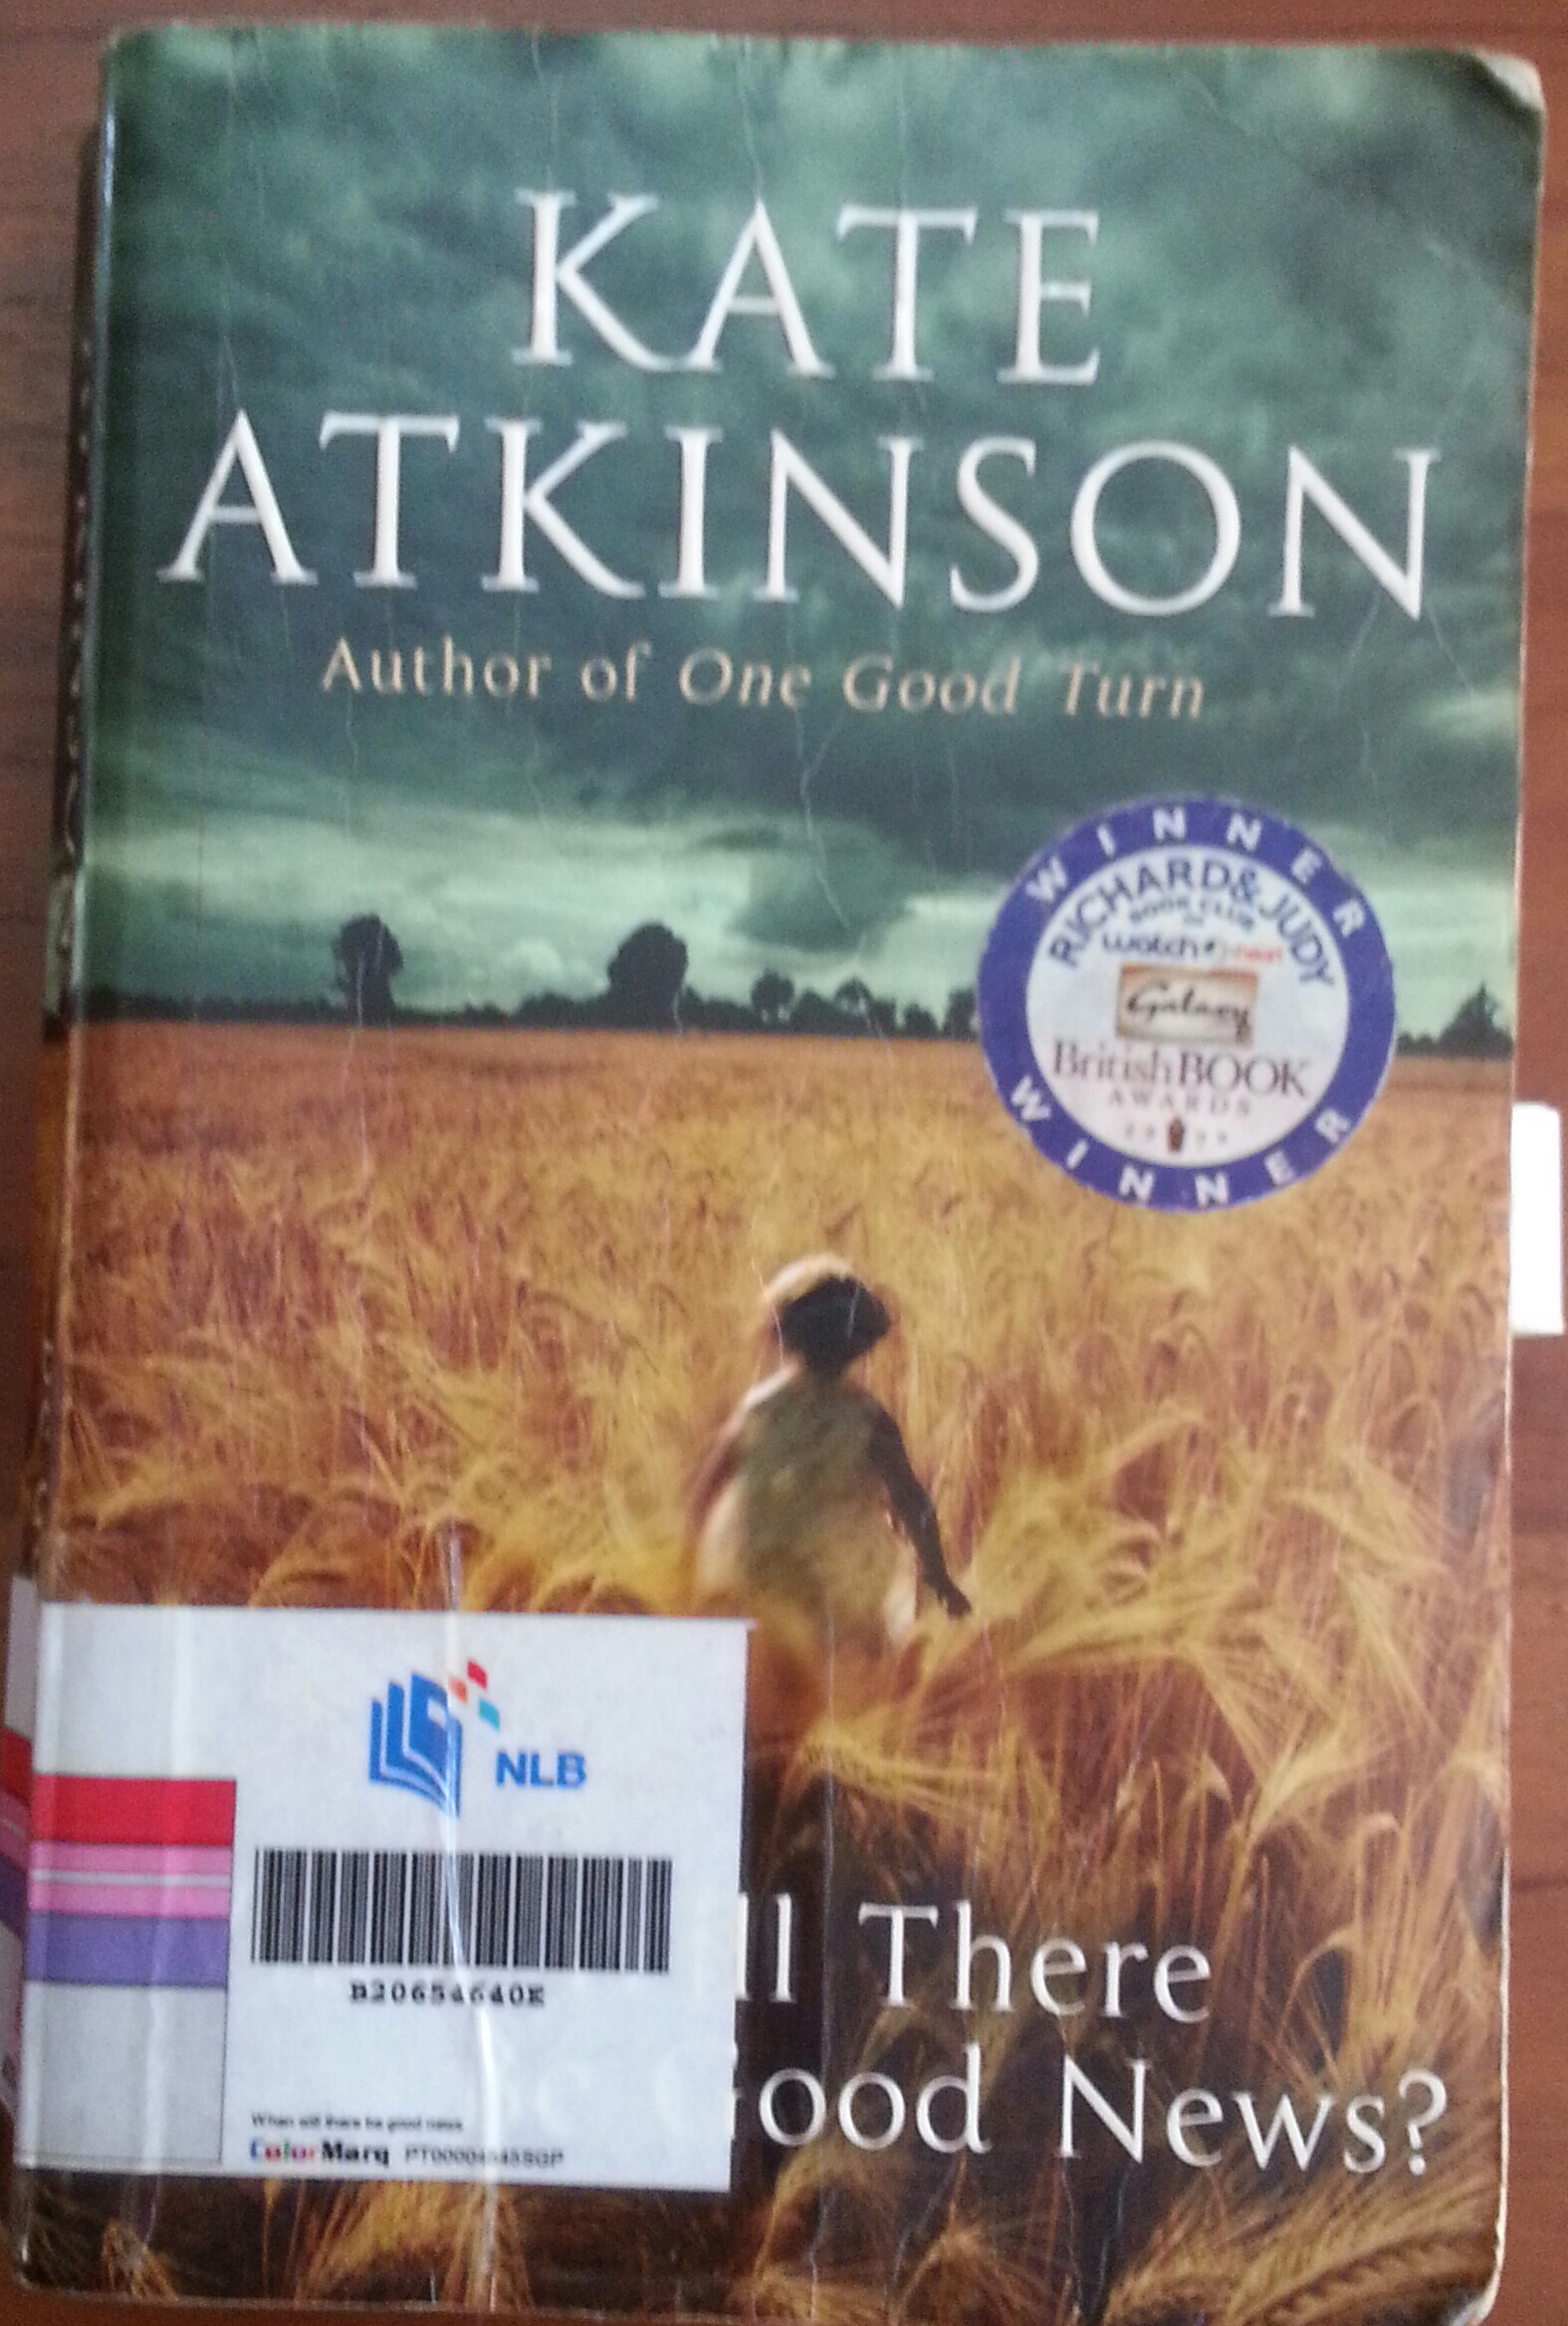 When will there be good news by kate atkinson